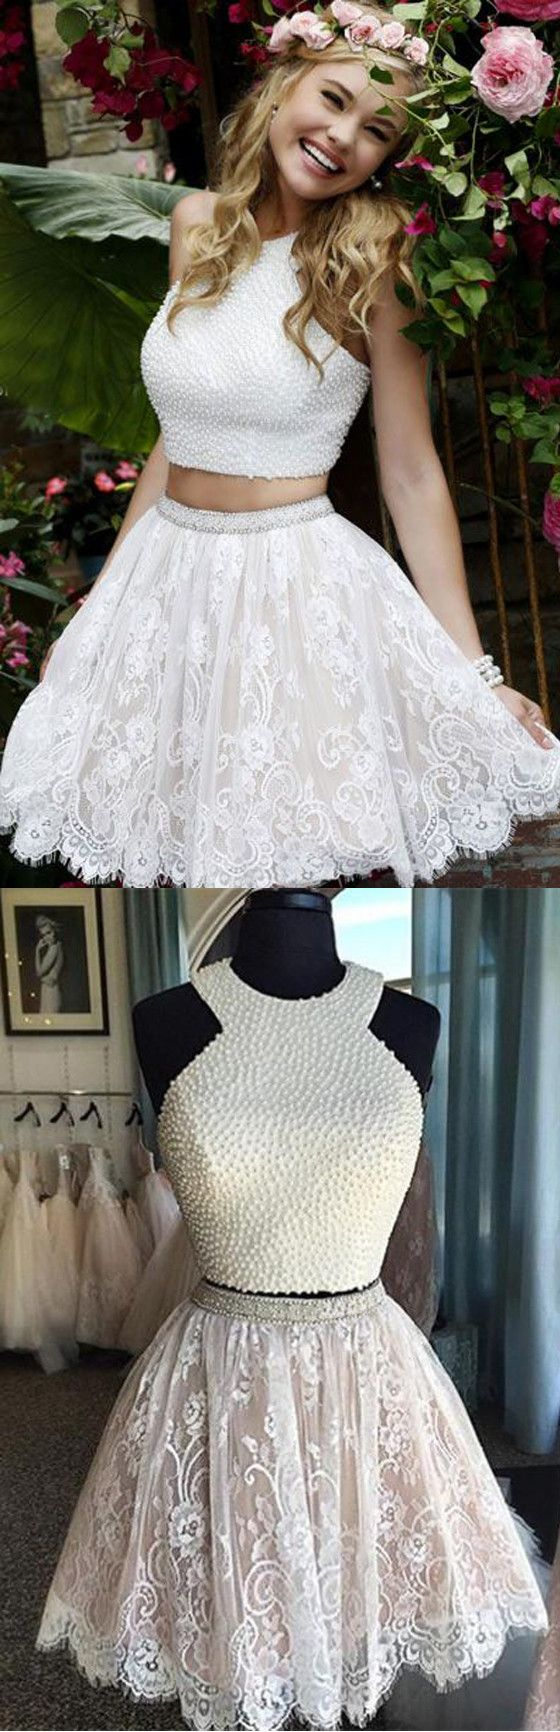 Best 25+ 8th grade formal dresses ideas on Pinterest | Grade 8 ...